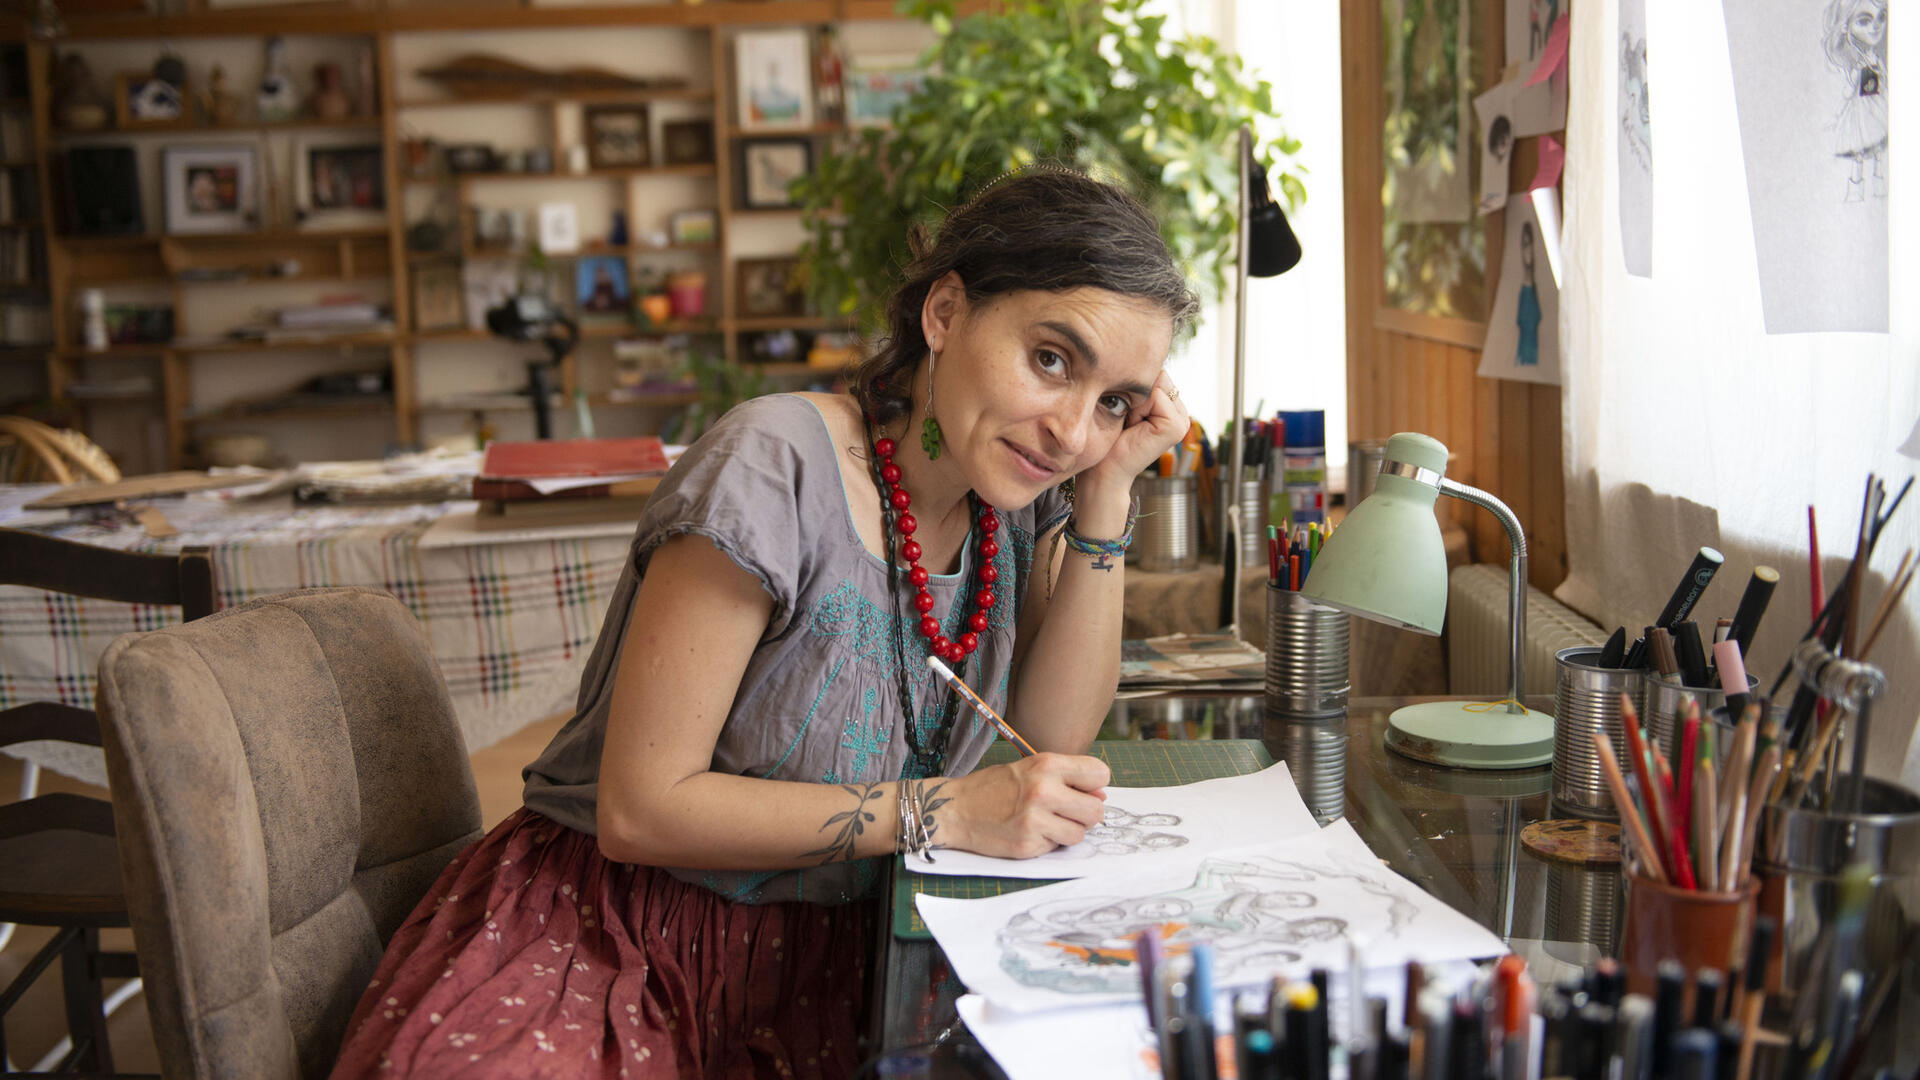 Artist and activist Diala Brisly, leaning on her desk holding a pencil, sketches an illustration of refugees for World Refugee Day 2021.